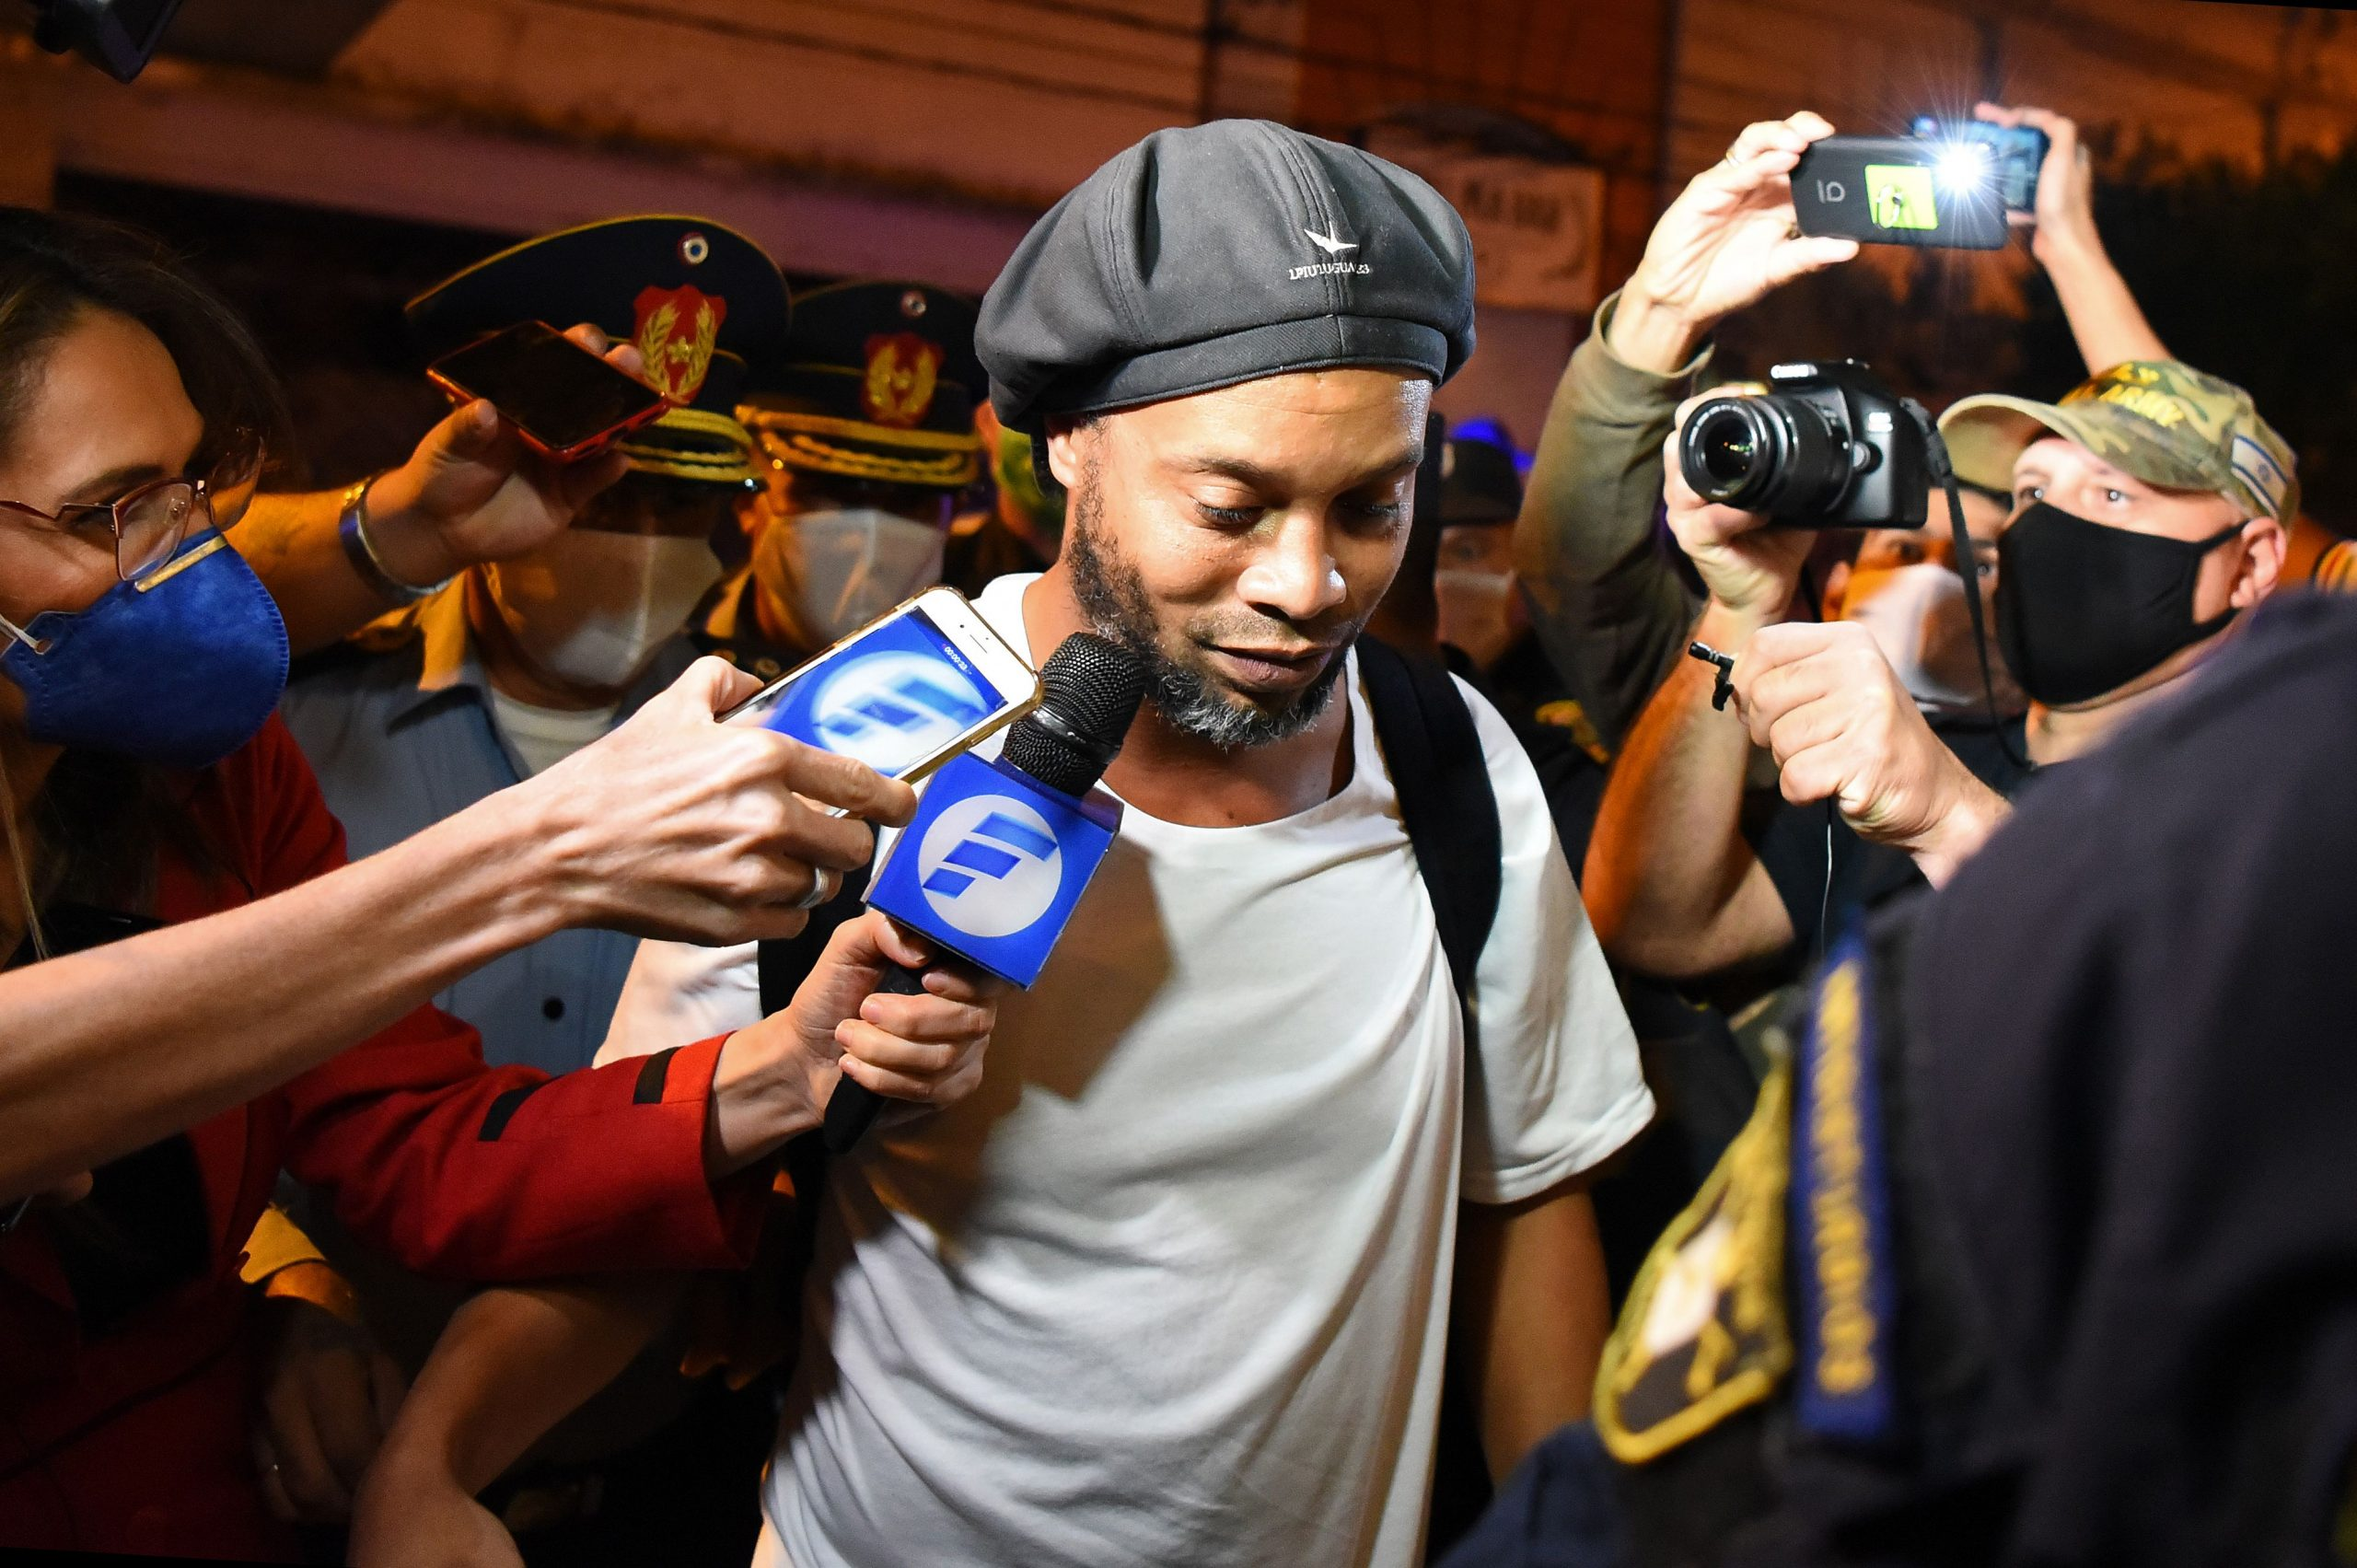 Ronaldinho finally out of Jail, but not free yet